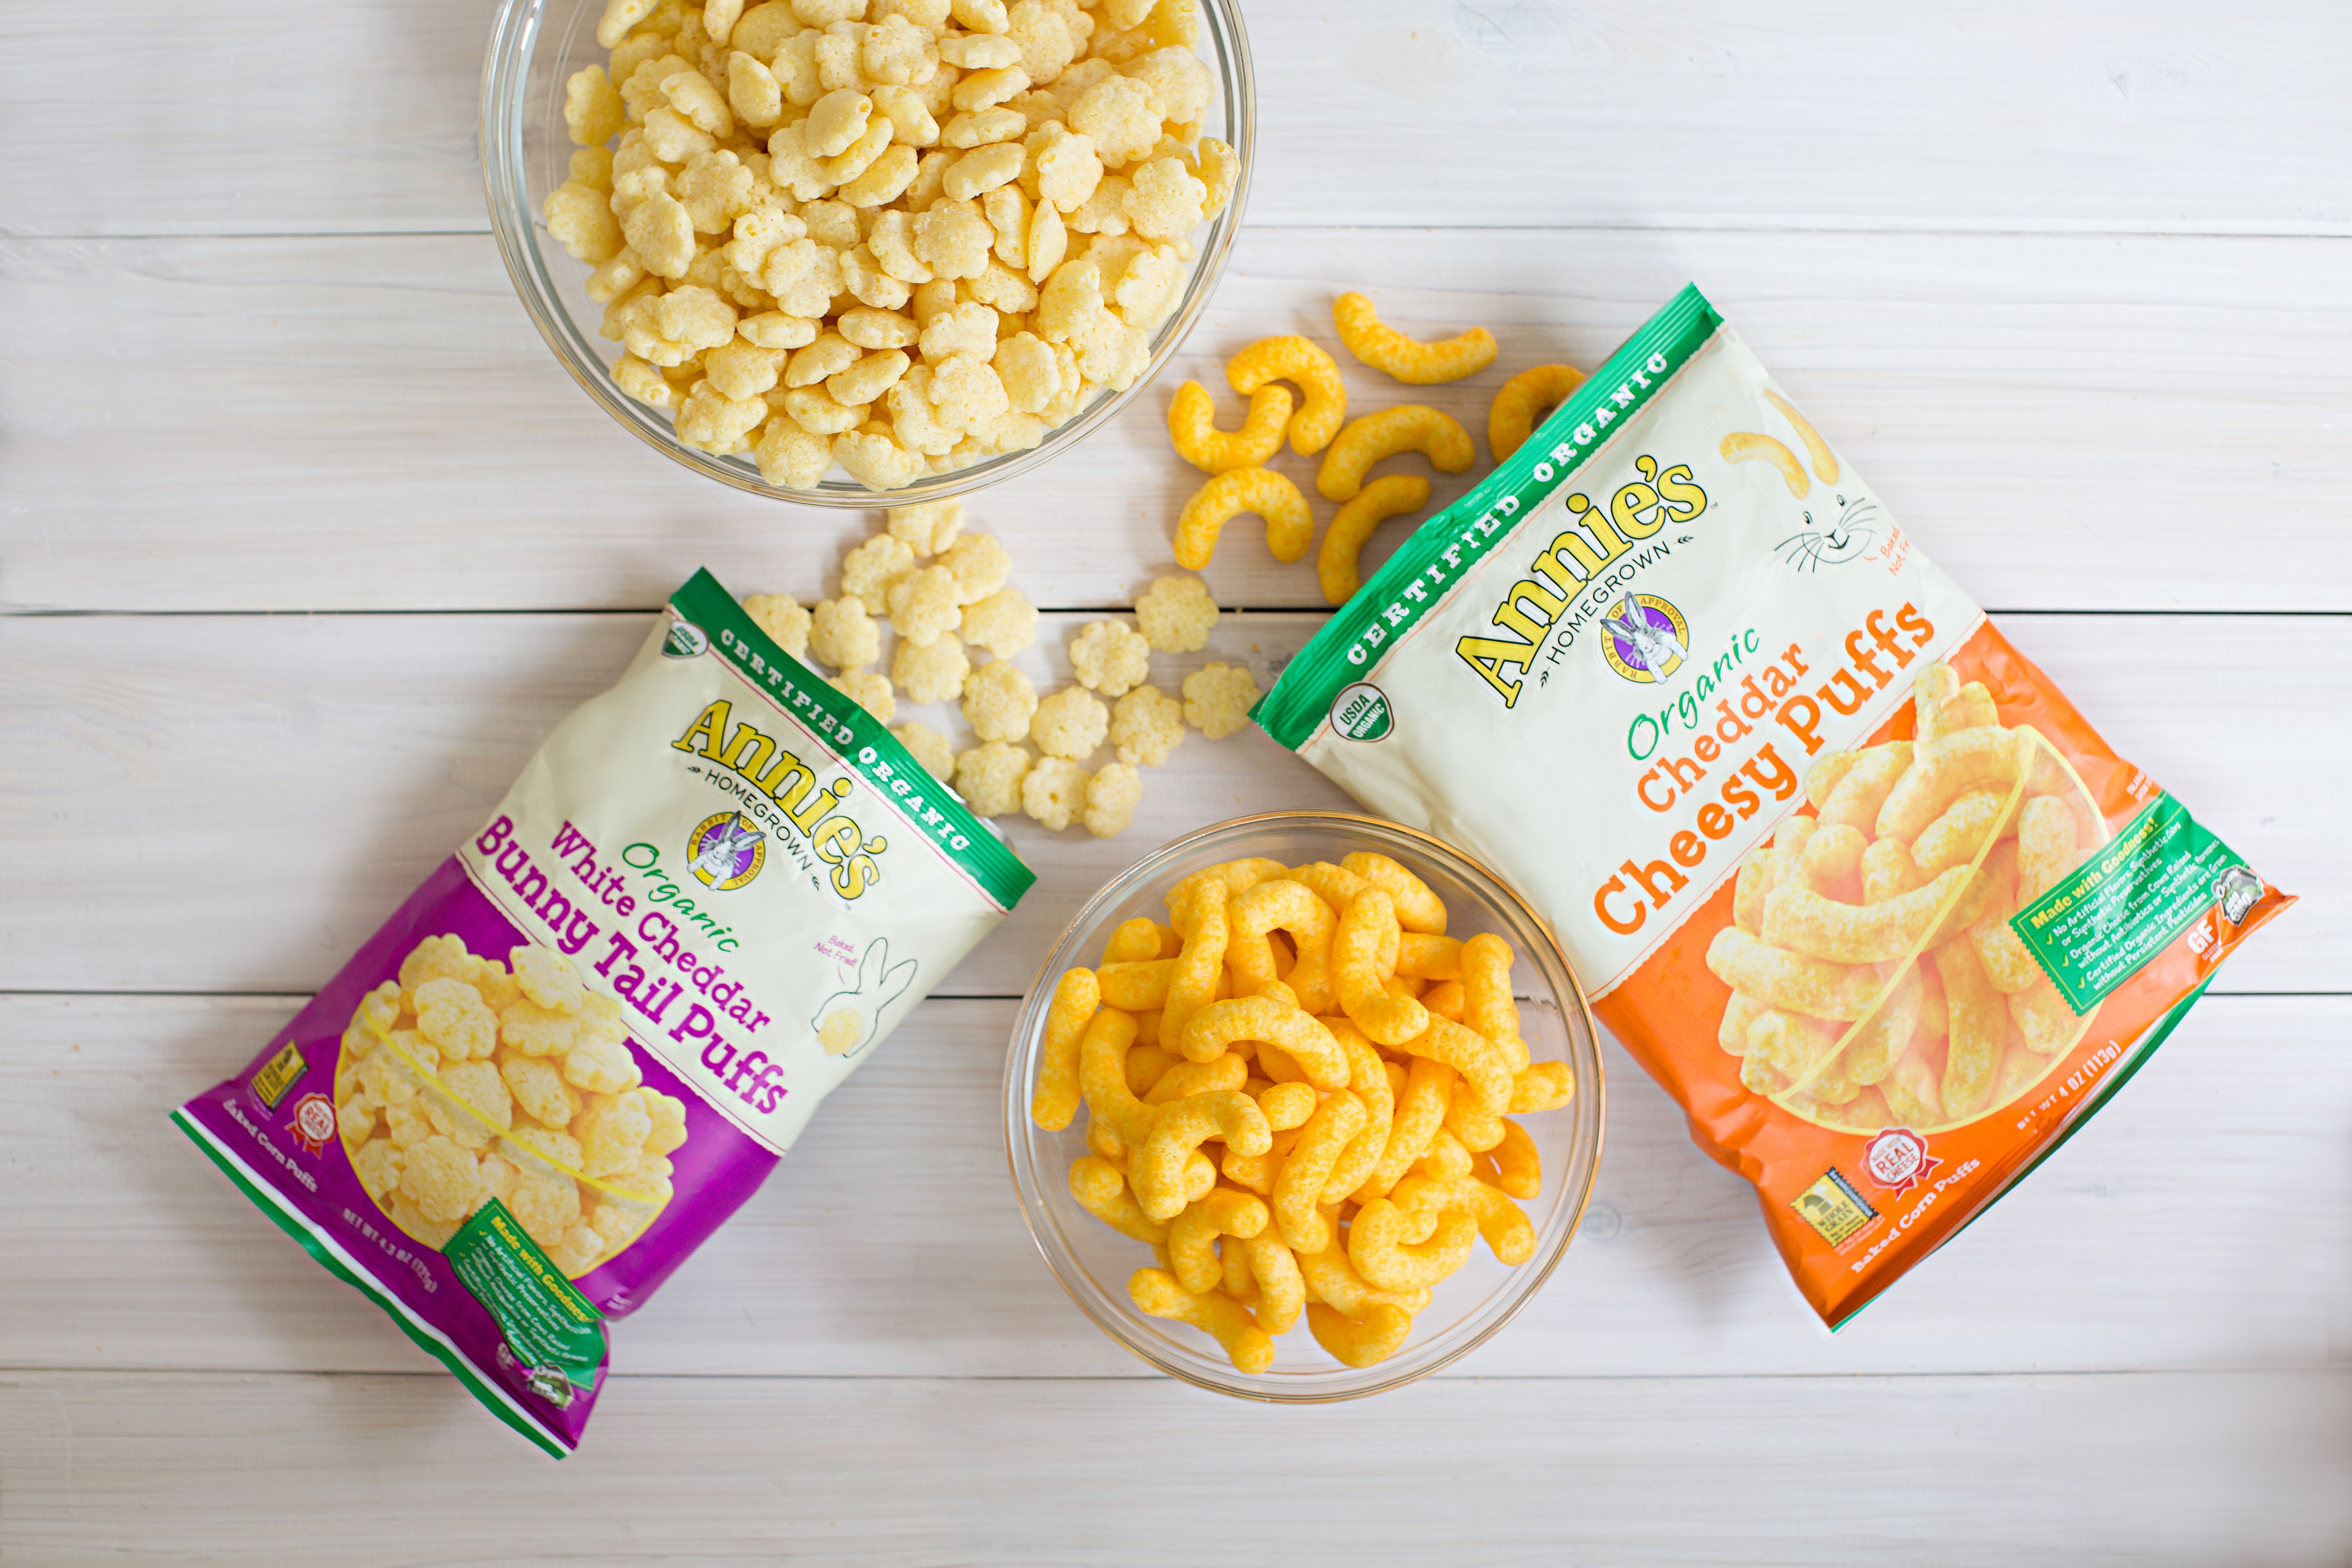 Childrens Healthy Snacks  Healthy Store Bought Snacks for Kids